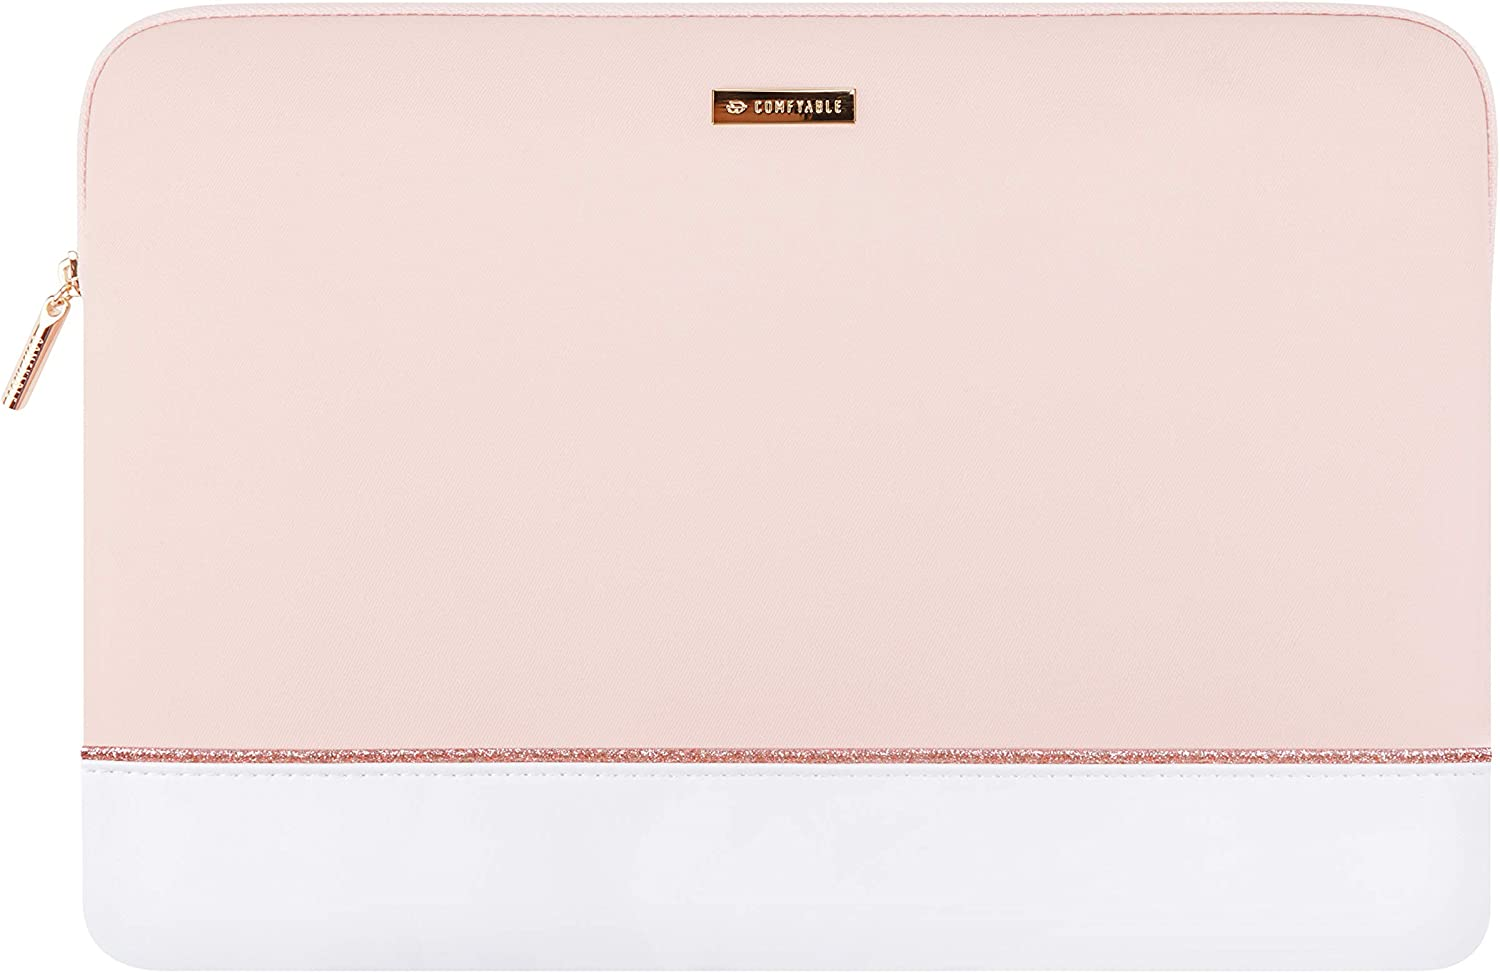 Comfyable Laptop Sleeve for 13-13.3-Inch MacBook Air & MacBook Pro - Waterproof Leather Cute Pink & White Computer Case